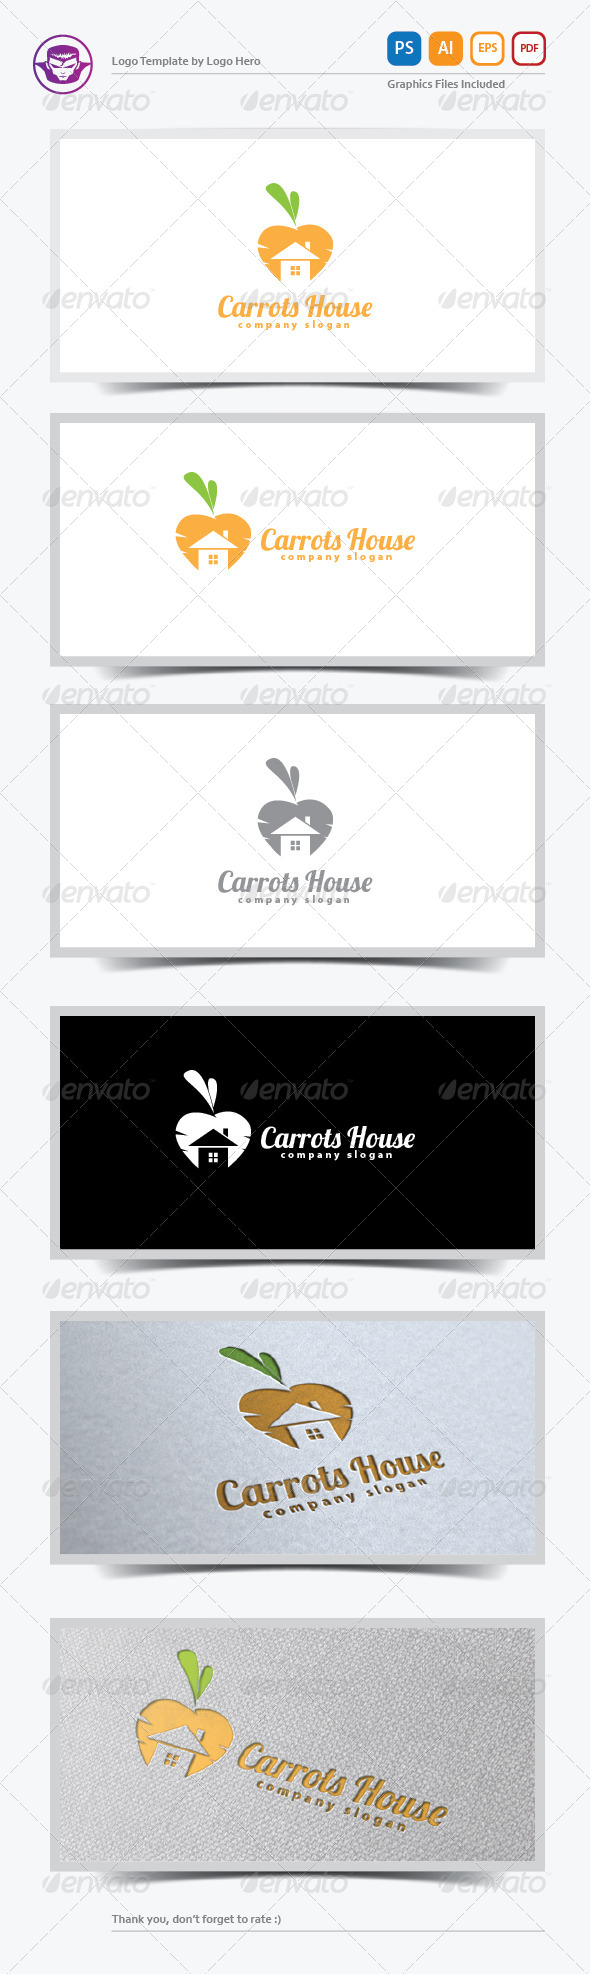 Carrots House Logo Template - Buildings Logo Templates